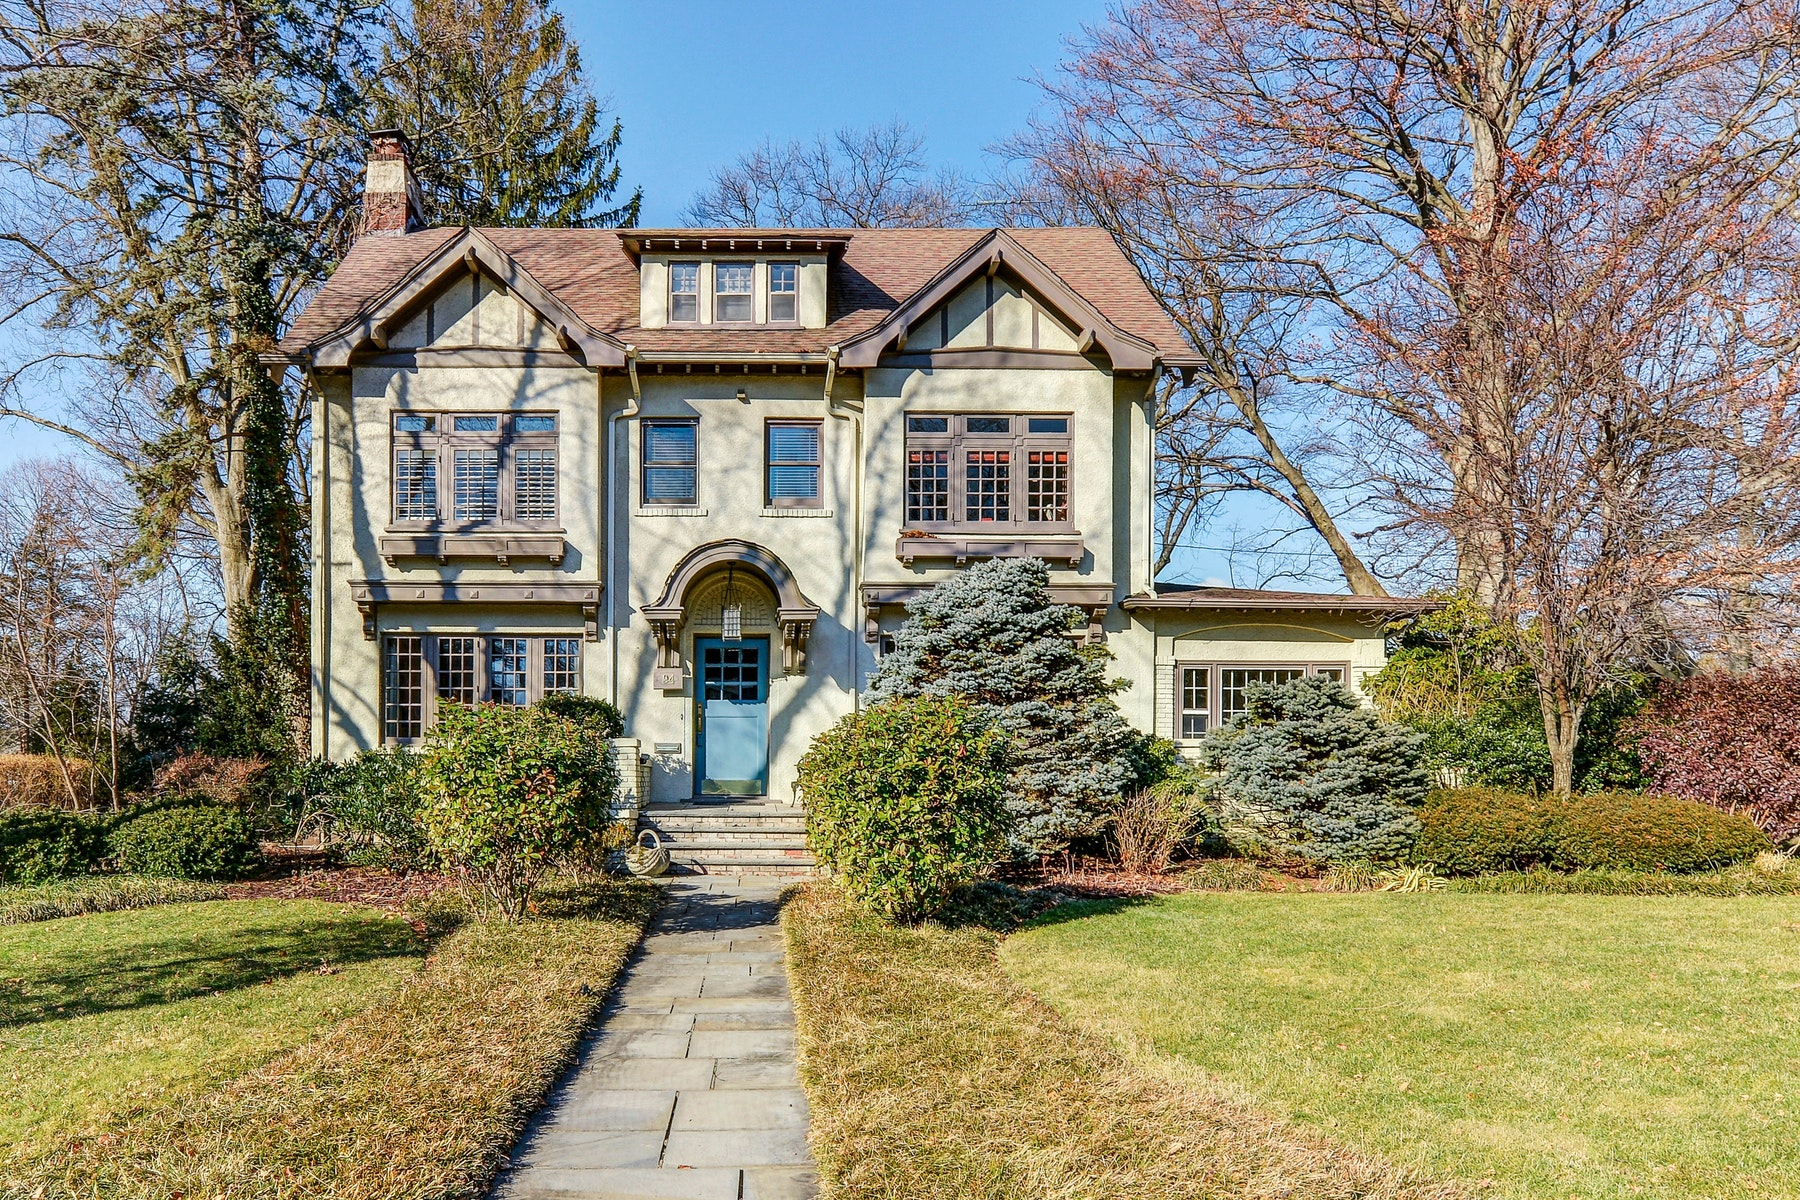 Single Family Homes for Sale at Majestic and Elegant! 94 Heights Road, Ridgewood, New Jersey 07450 United States